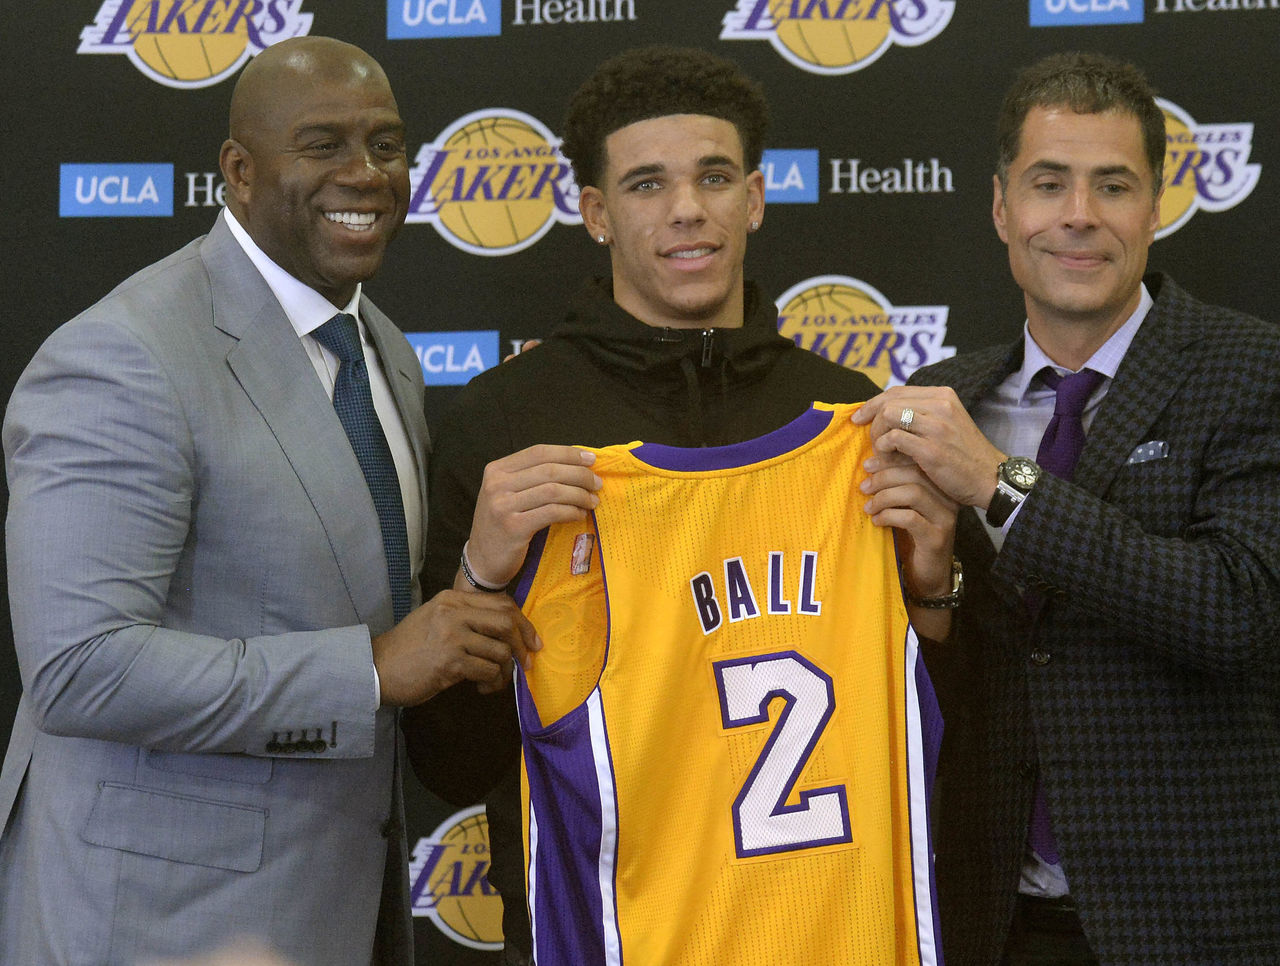 Cropped_2017-06-23t220536z_200698923_nocid_rtrmadp_3_nba-los-angeles-lakers-press-conference